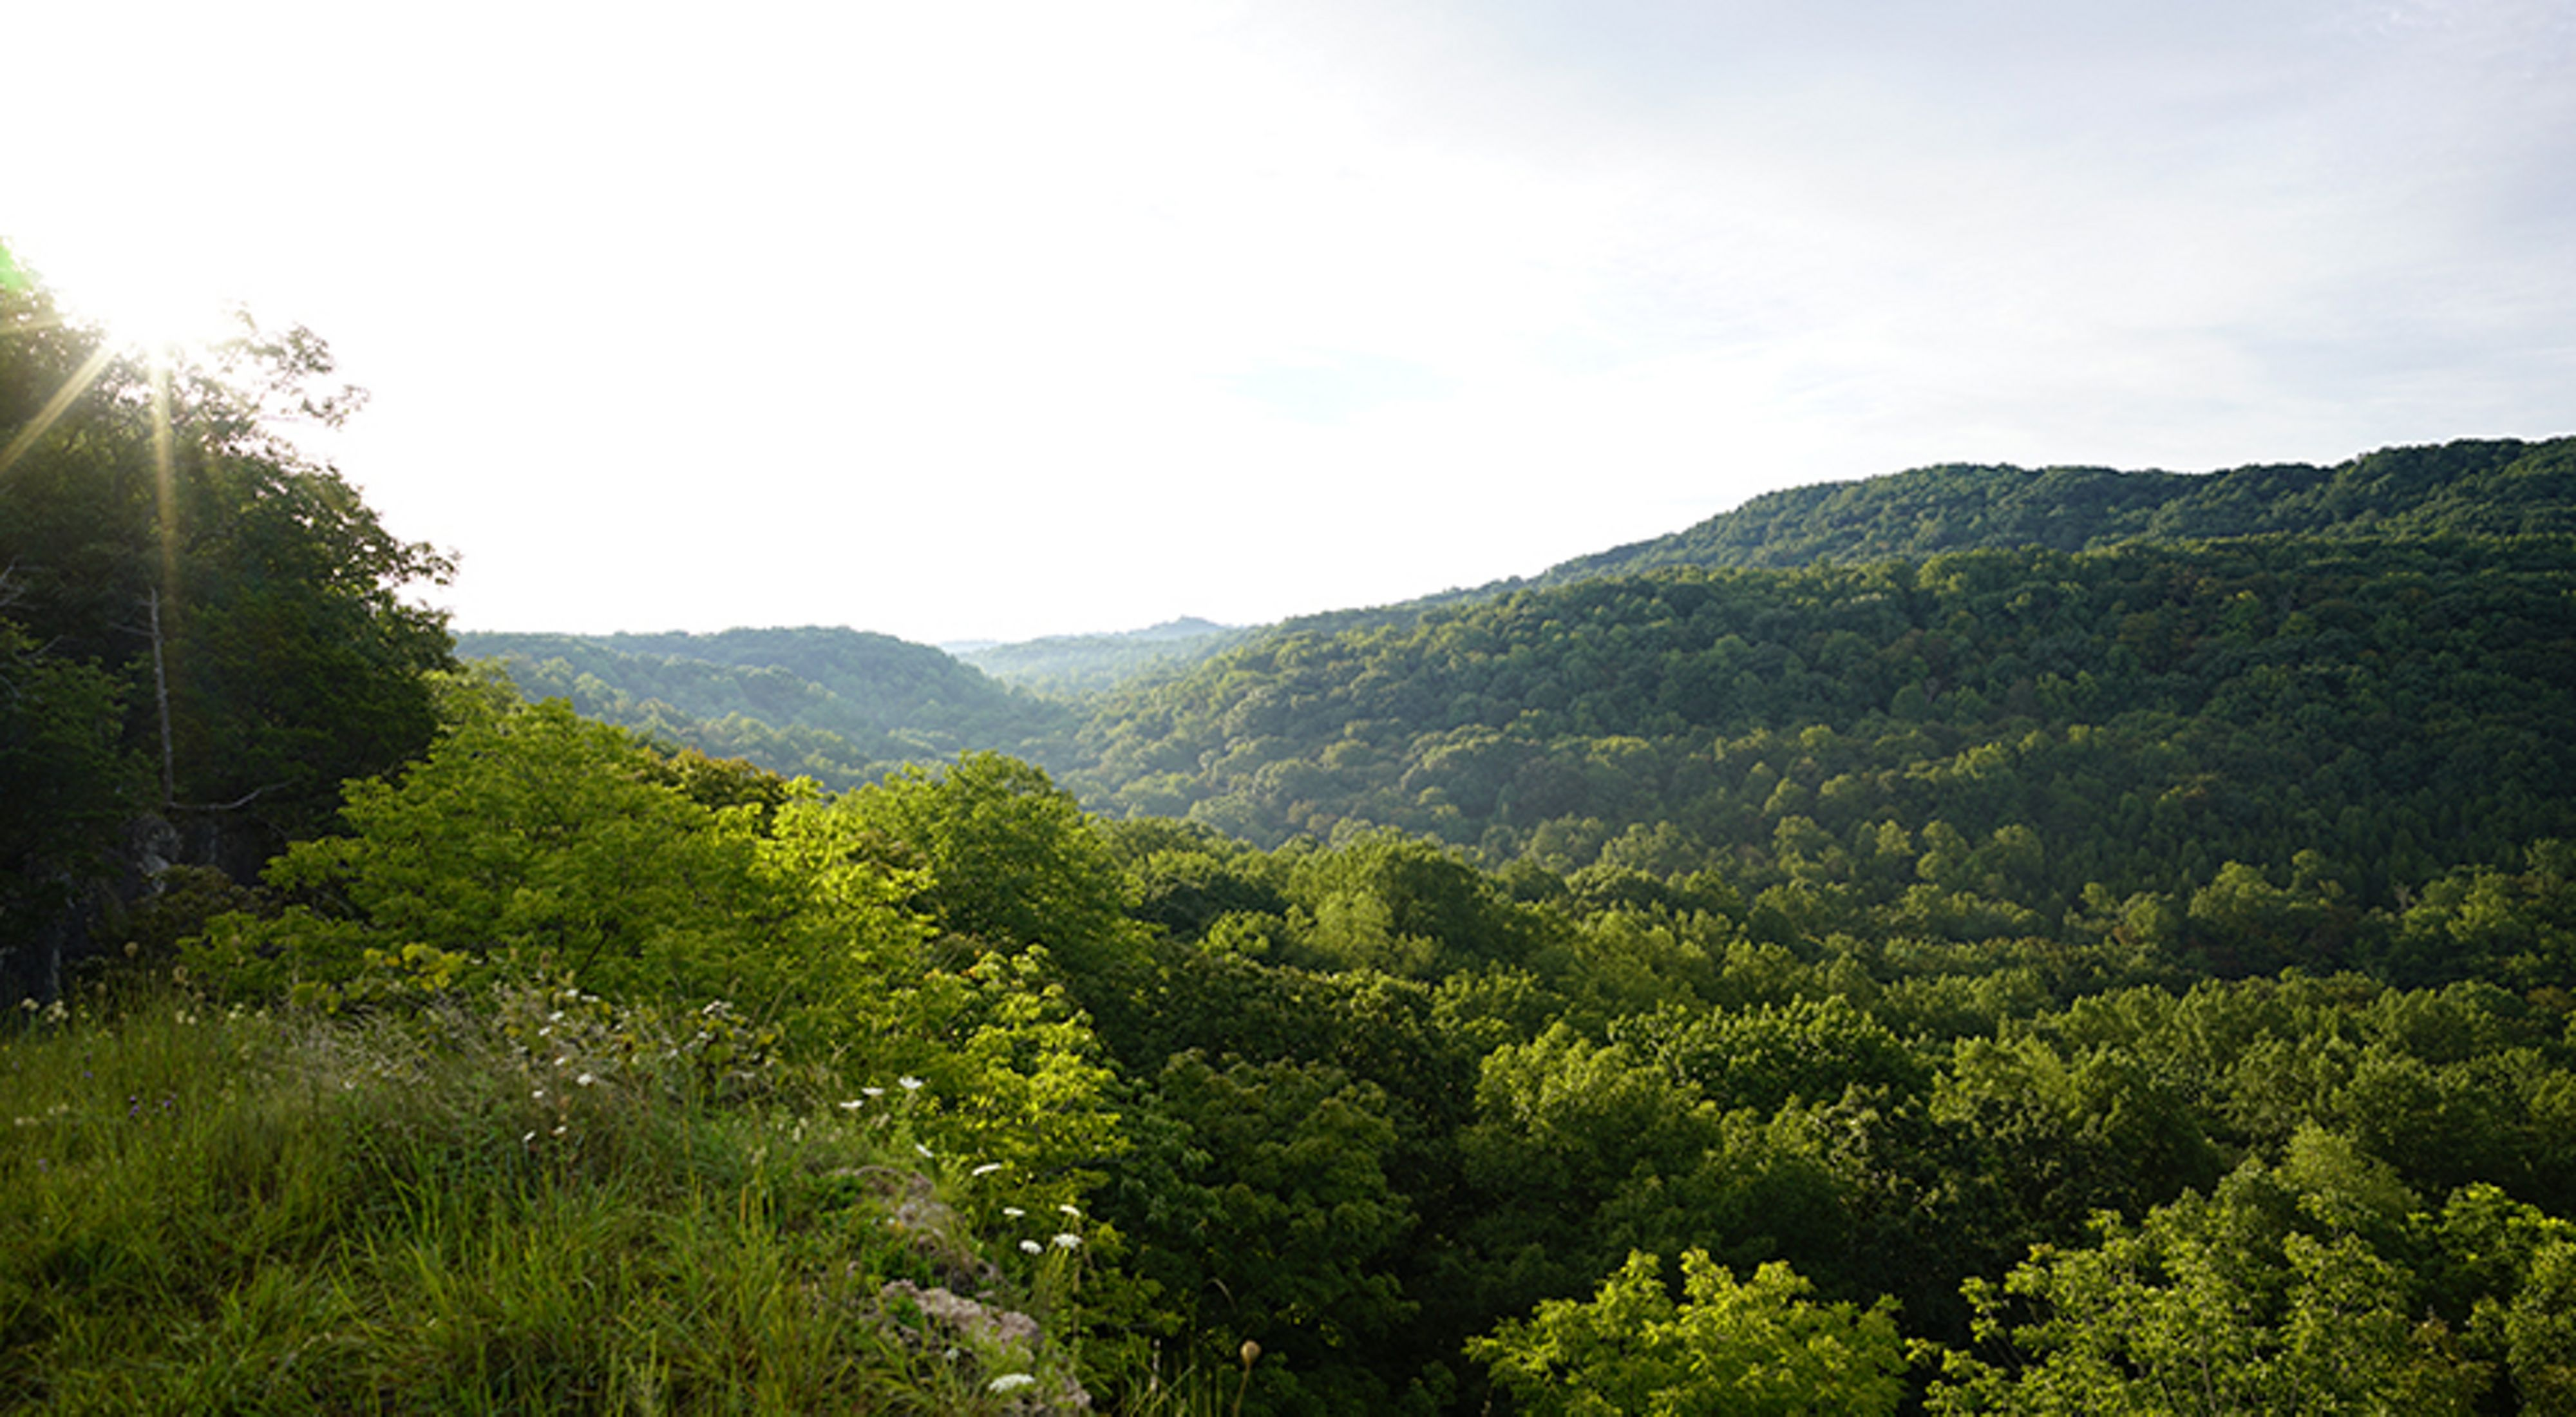 The morning sun shines over miles of overlapping forested hills with summer green foliage.